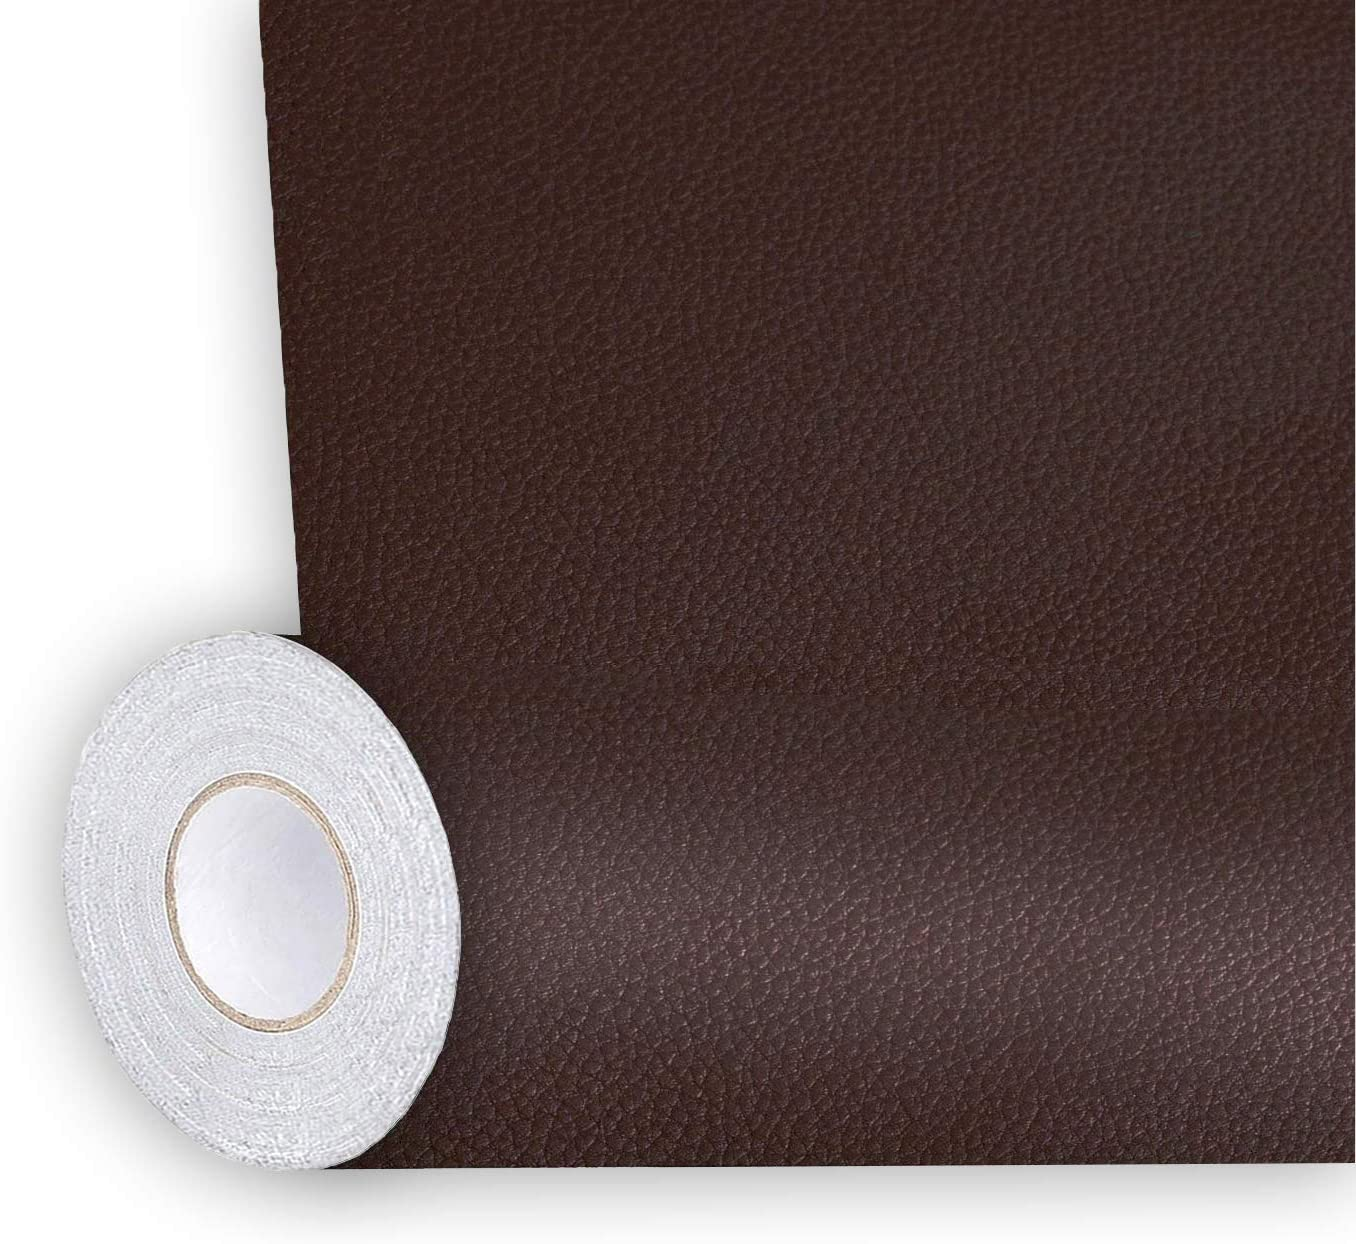 Shagoom Leather Repair Patch, Repair Patch Self Adhesive Waterproof, DIY Large Leather Patches for Couches, Furniture, Kitchen Cabinets, Wall (Dark Brown, 17X79 inch)